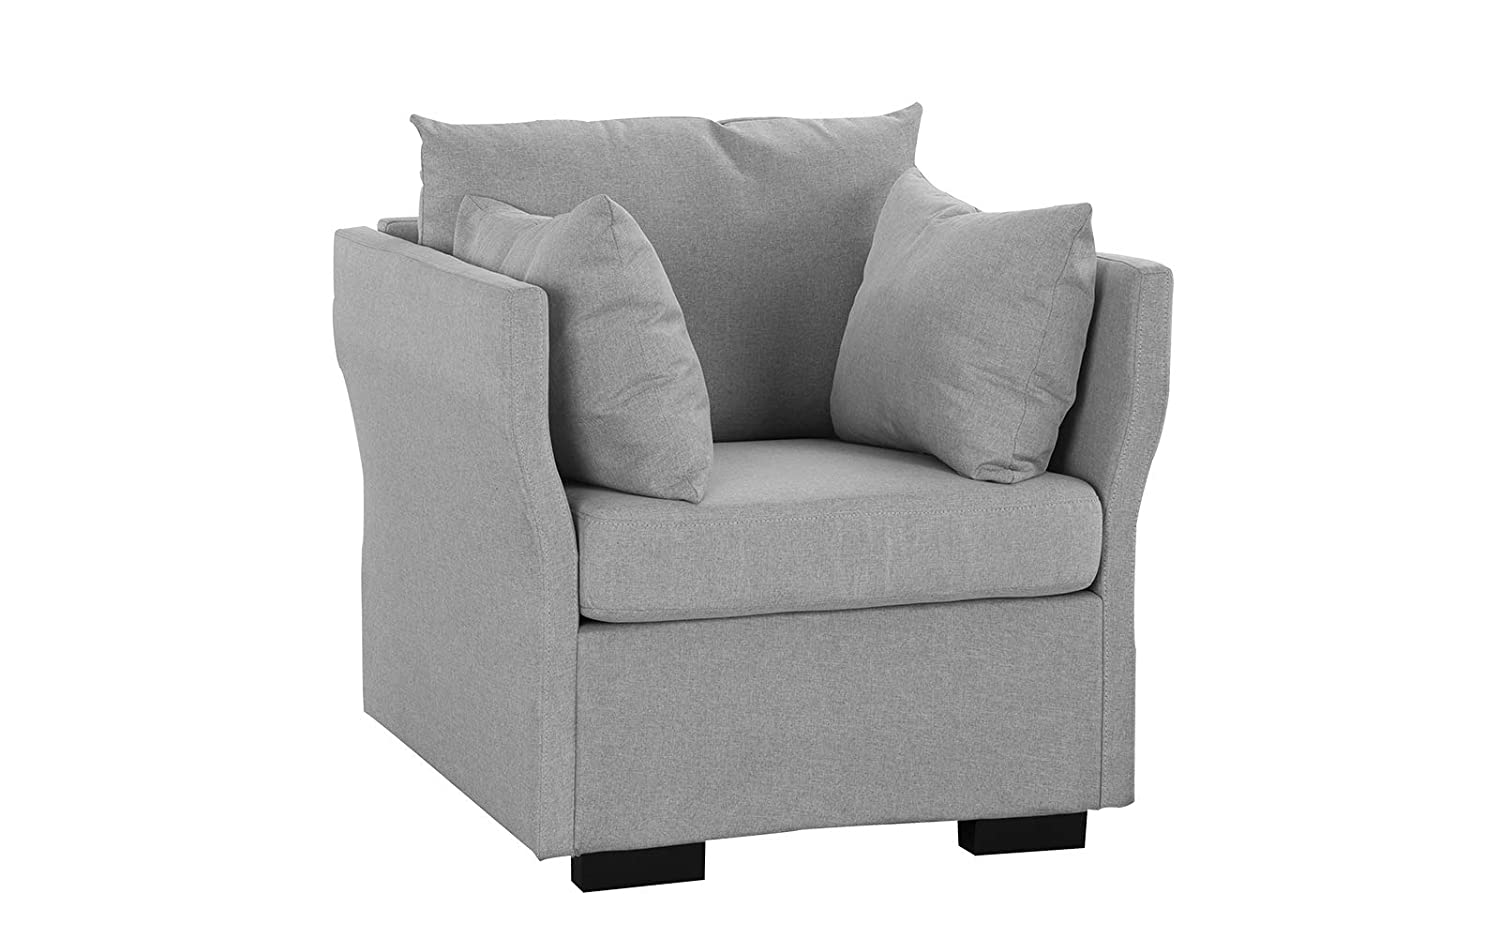 Modern Living Room Linen Fabric Armchair Image